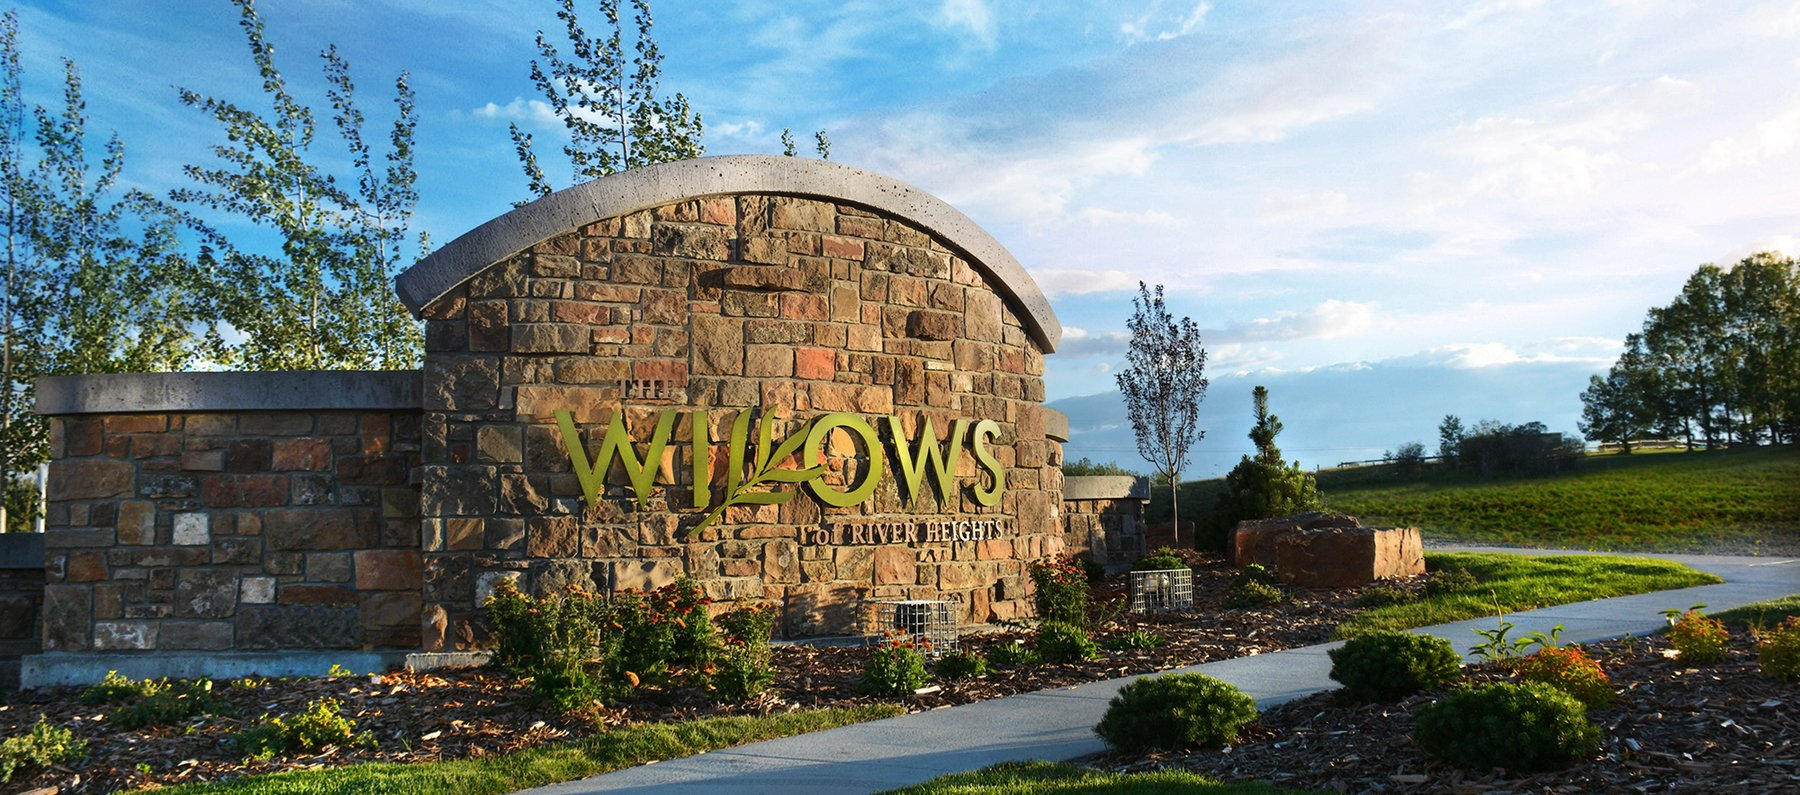 Willows - This trendy area just east of the burgeoning community of Fireside is a great place to start! The Willows is geared to those who want the luxury of a new home , close to all the amenities but also a short drive to the mountains. The Willows are situated just east of Highway 22 on the south side of Cochrane where you can enjoy walks in the river valley or amid the aspen trees and watch the sun set over the rolling plains and foothills. Calgary is a 20 minute drive away for those doses of big city life before you return to your community, where your house is your palace and your neighbours are your friends.